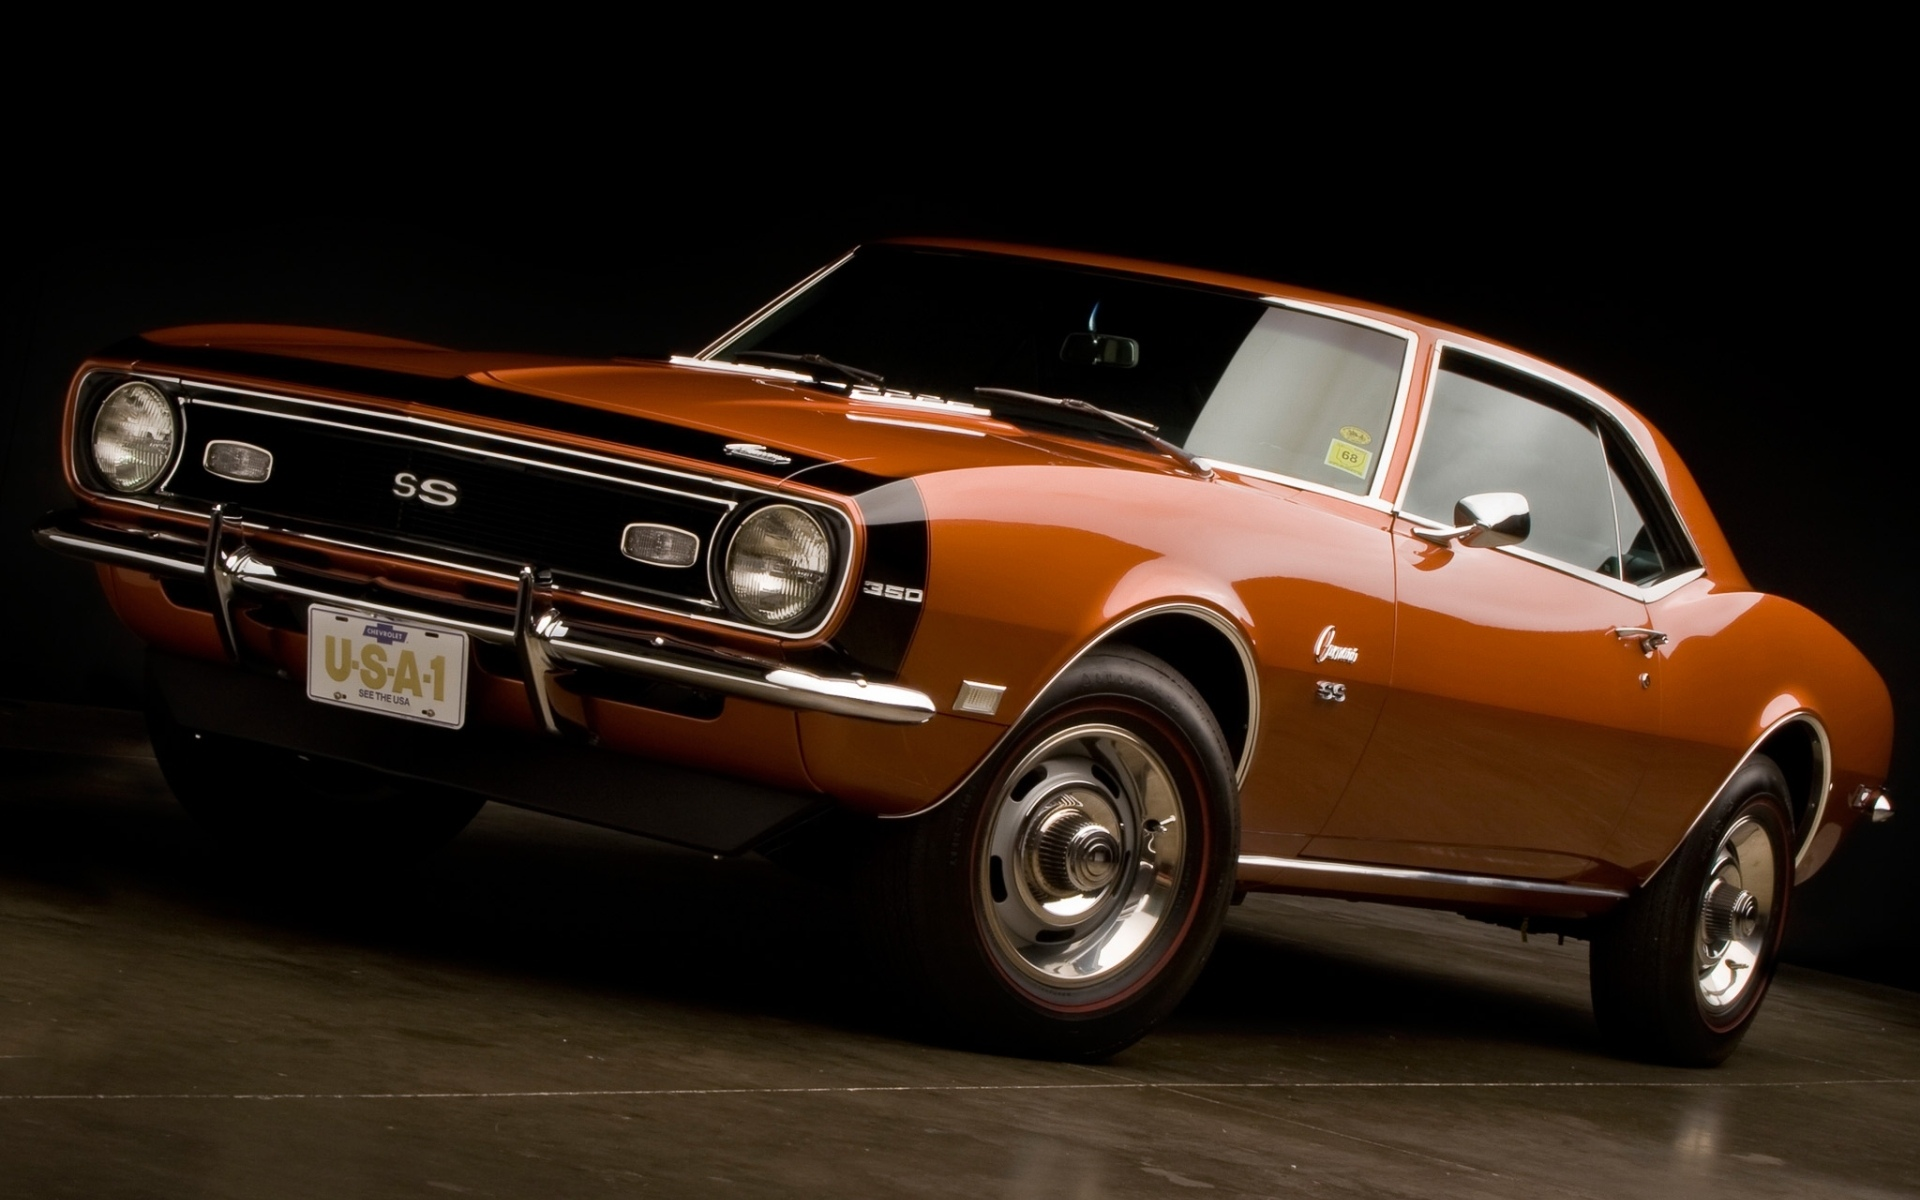 Chevrolet Camaro Ss Camaro 1968 Coupe 350 Muscle Cars Wallpaper 1920x1200 69046 Wallpaperup